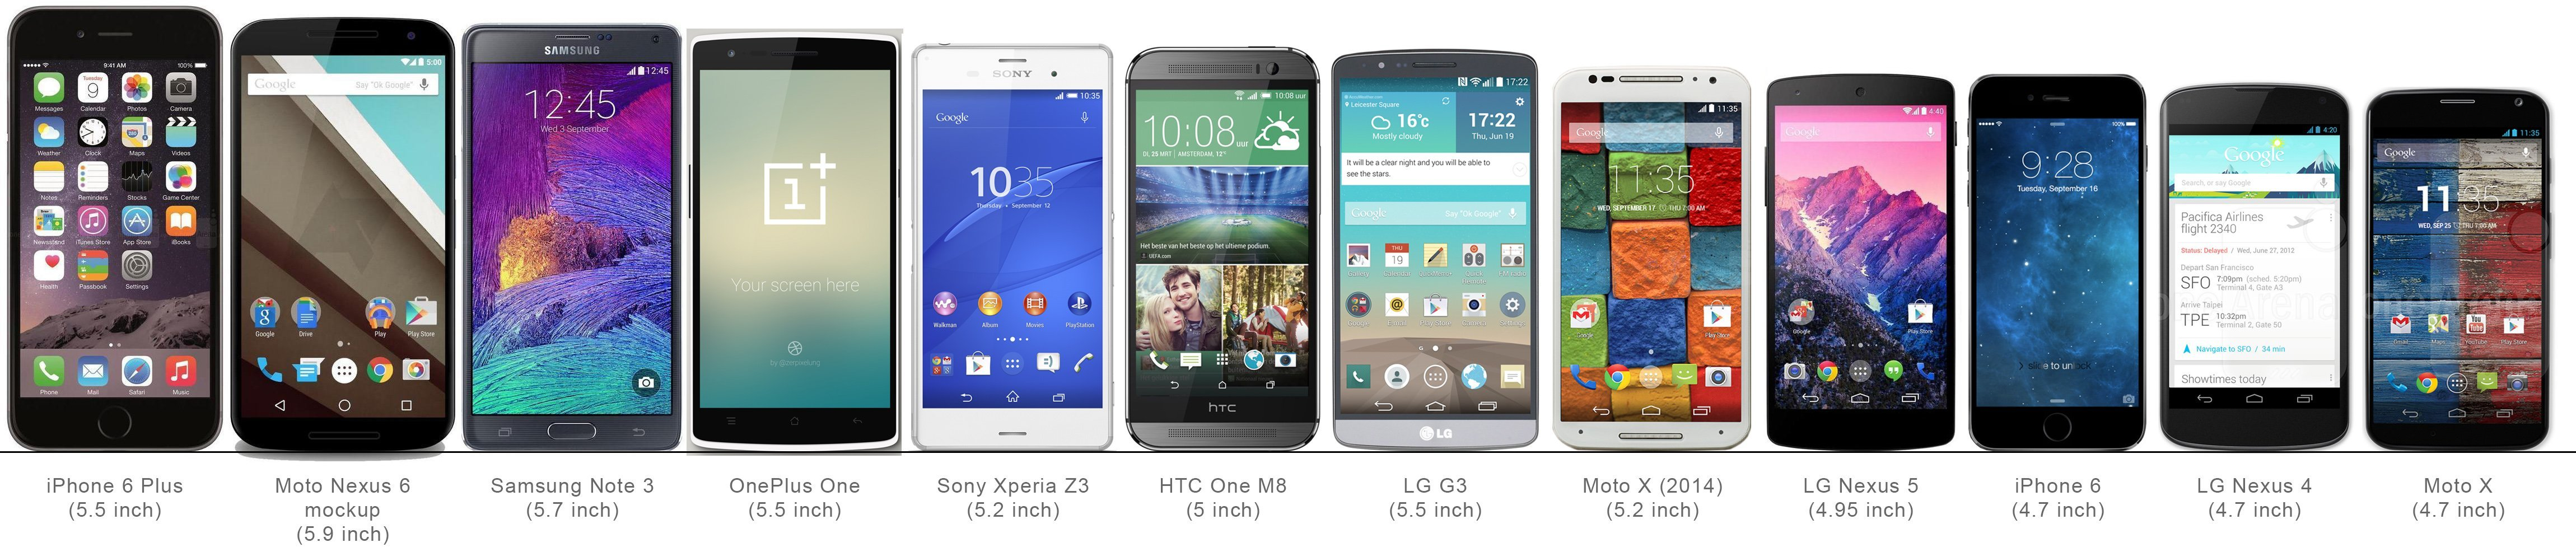 Graphic with phones sizes compared Moto X through iPhone 6